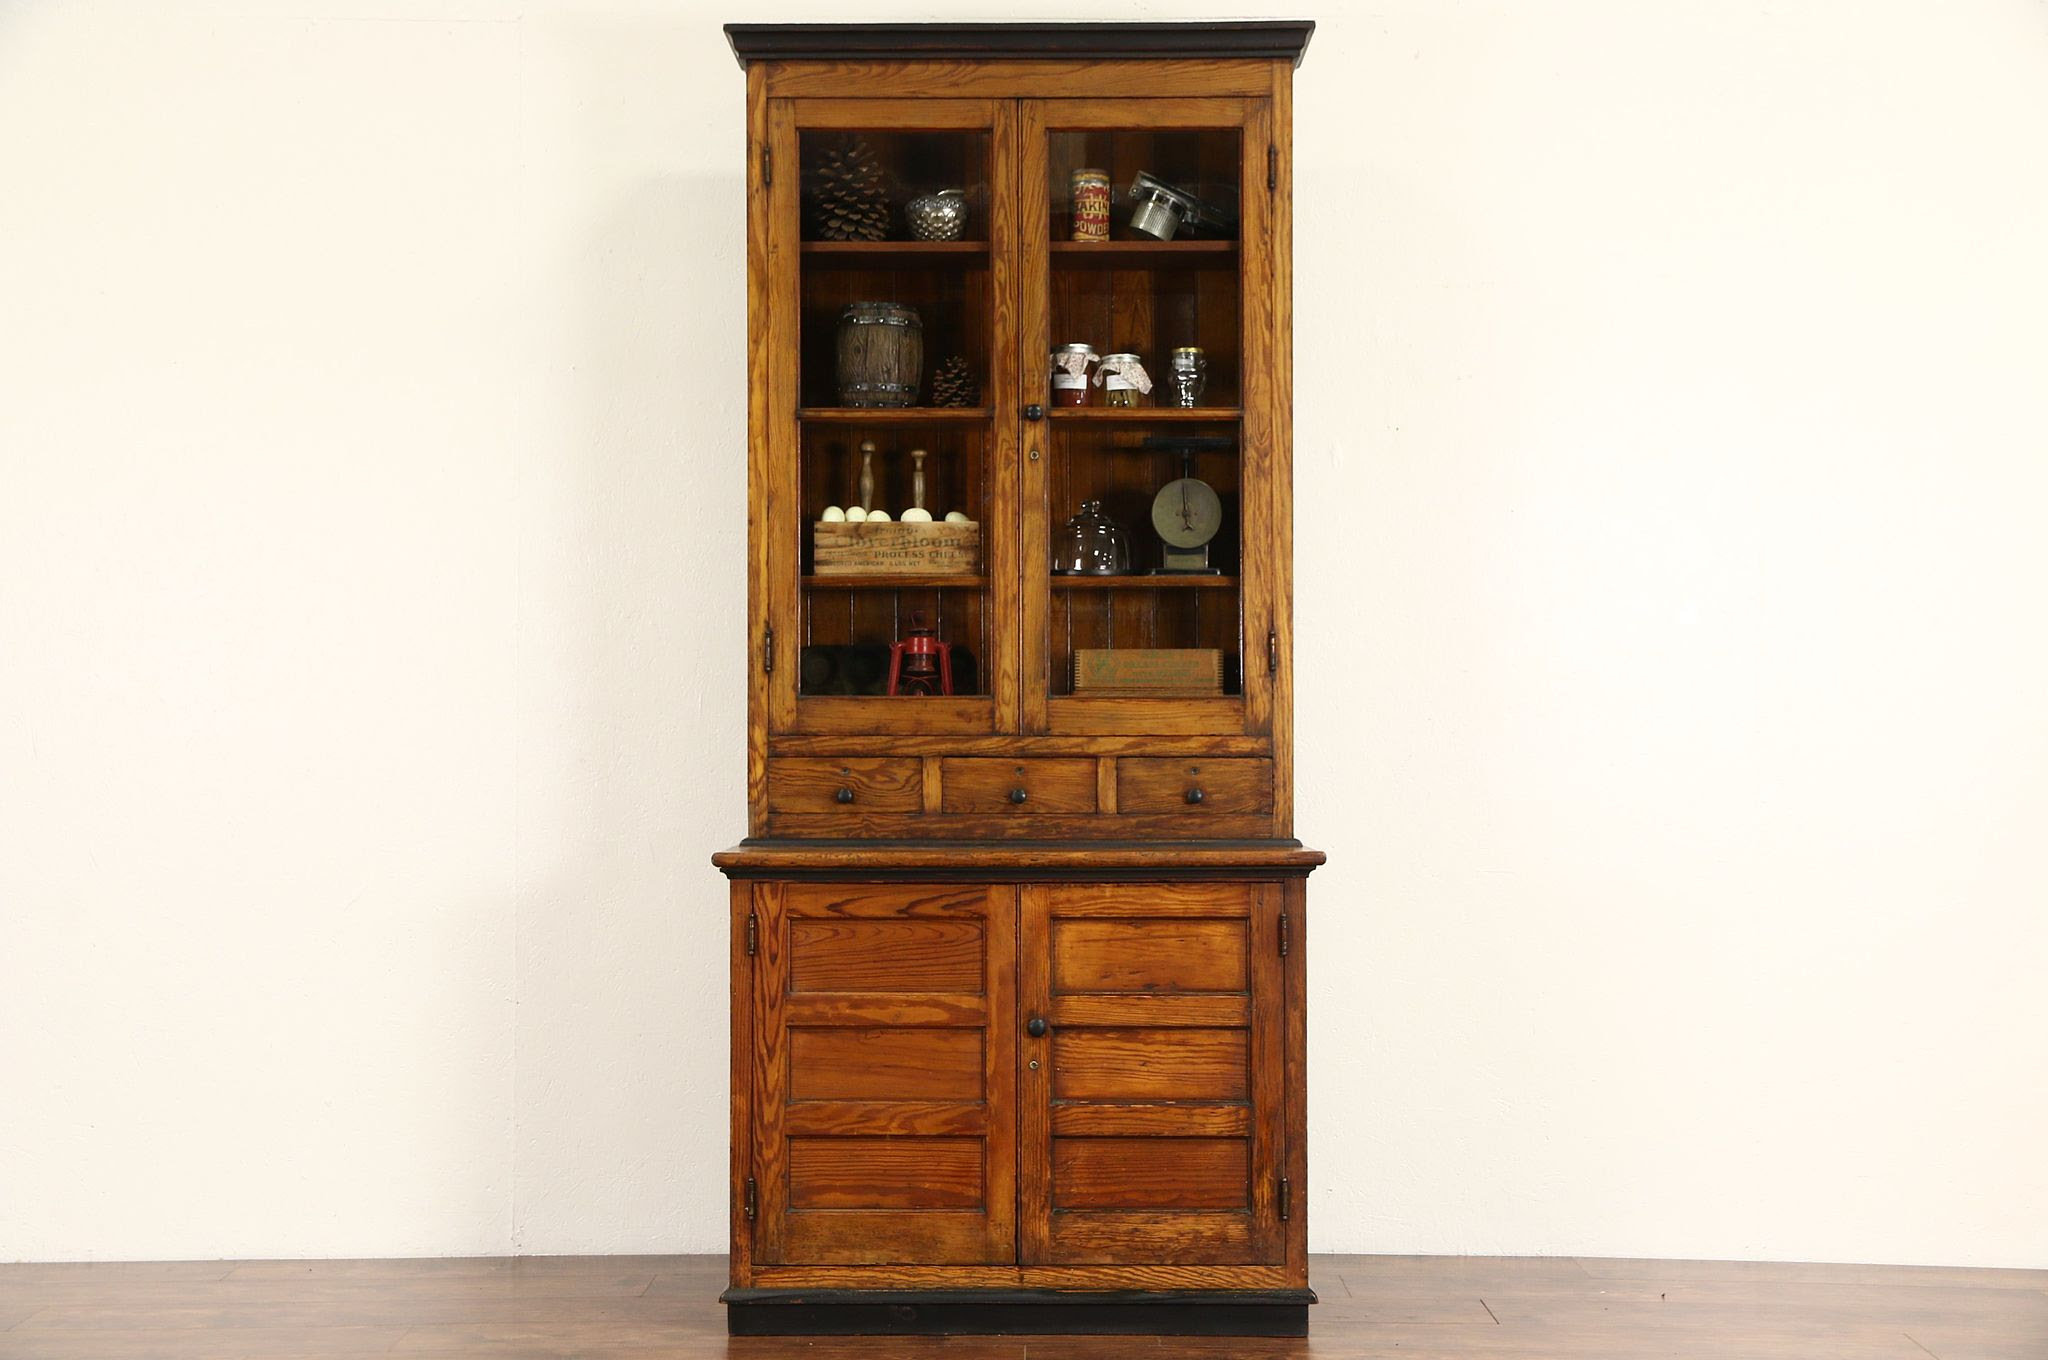 Sold Country Pine 1890 S Antique Pantry Cupboard Kitchen Cabinet Wavy Glass Doors Harp Gallery Antiques Furniture